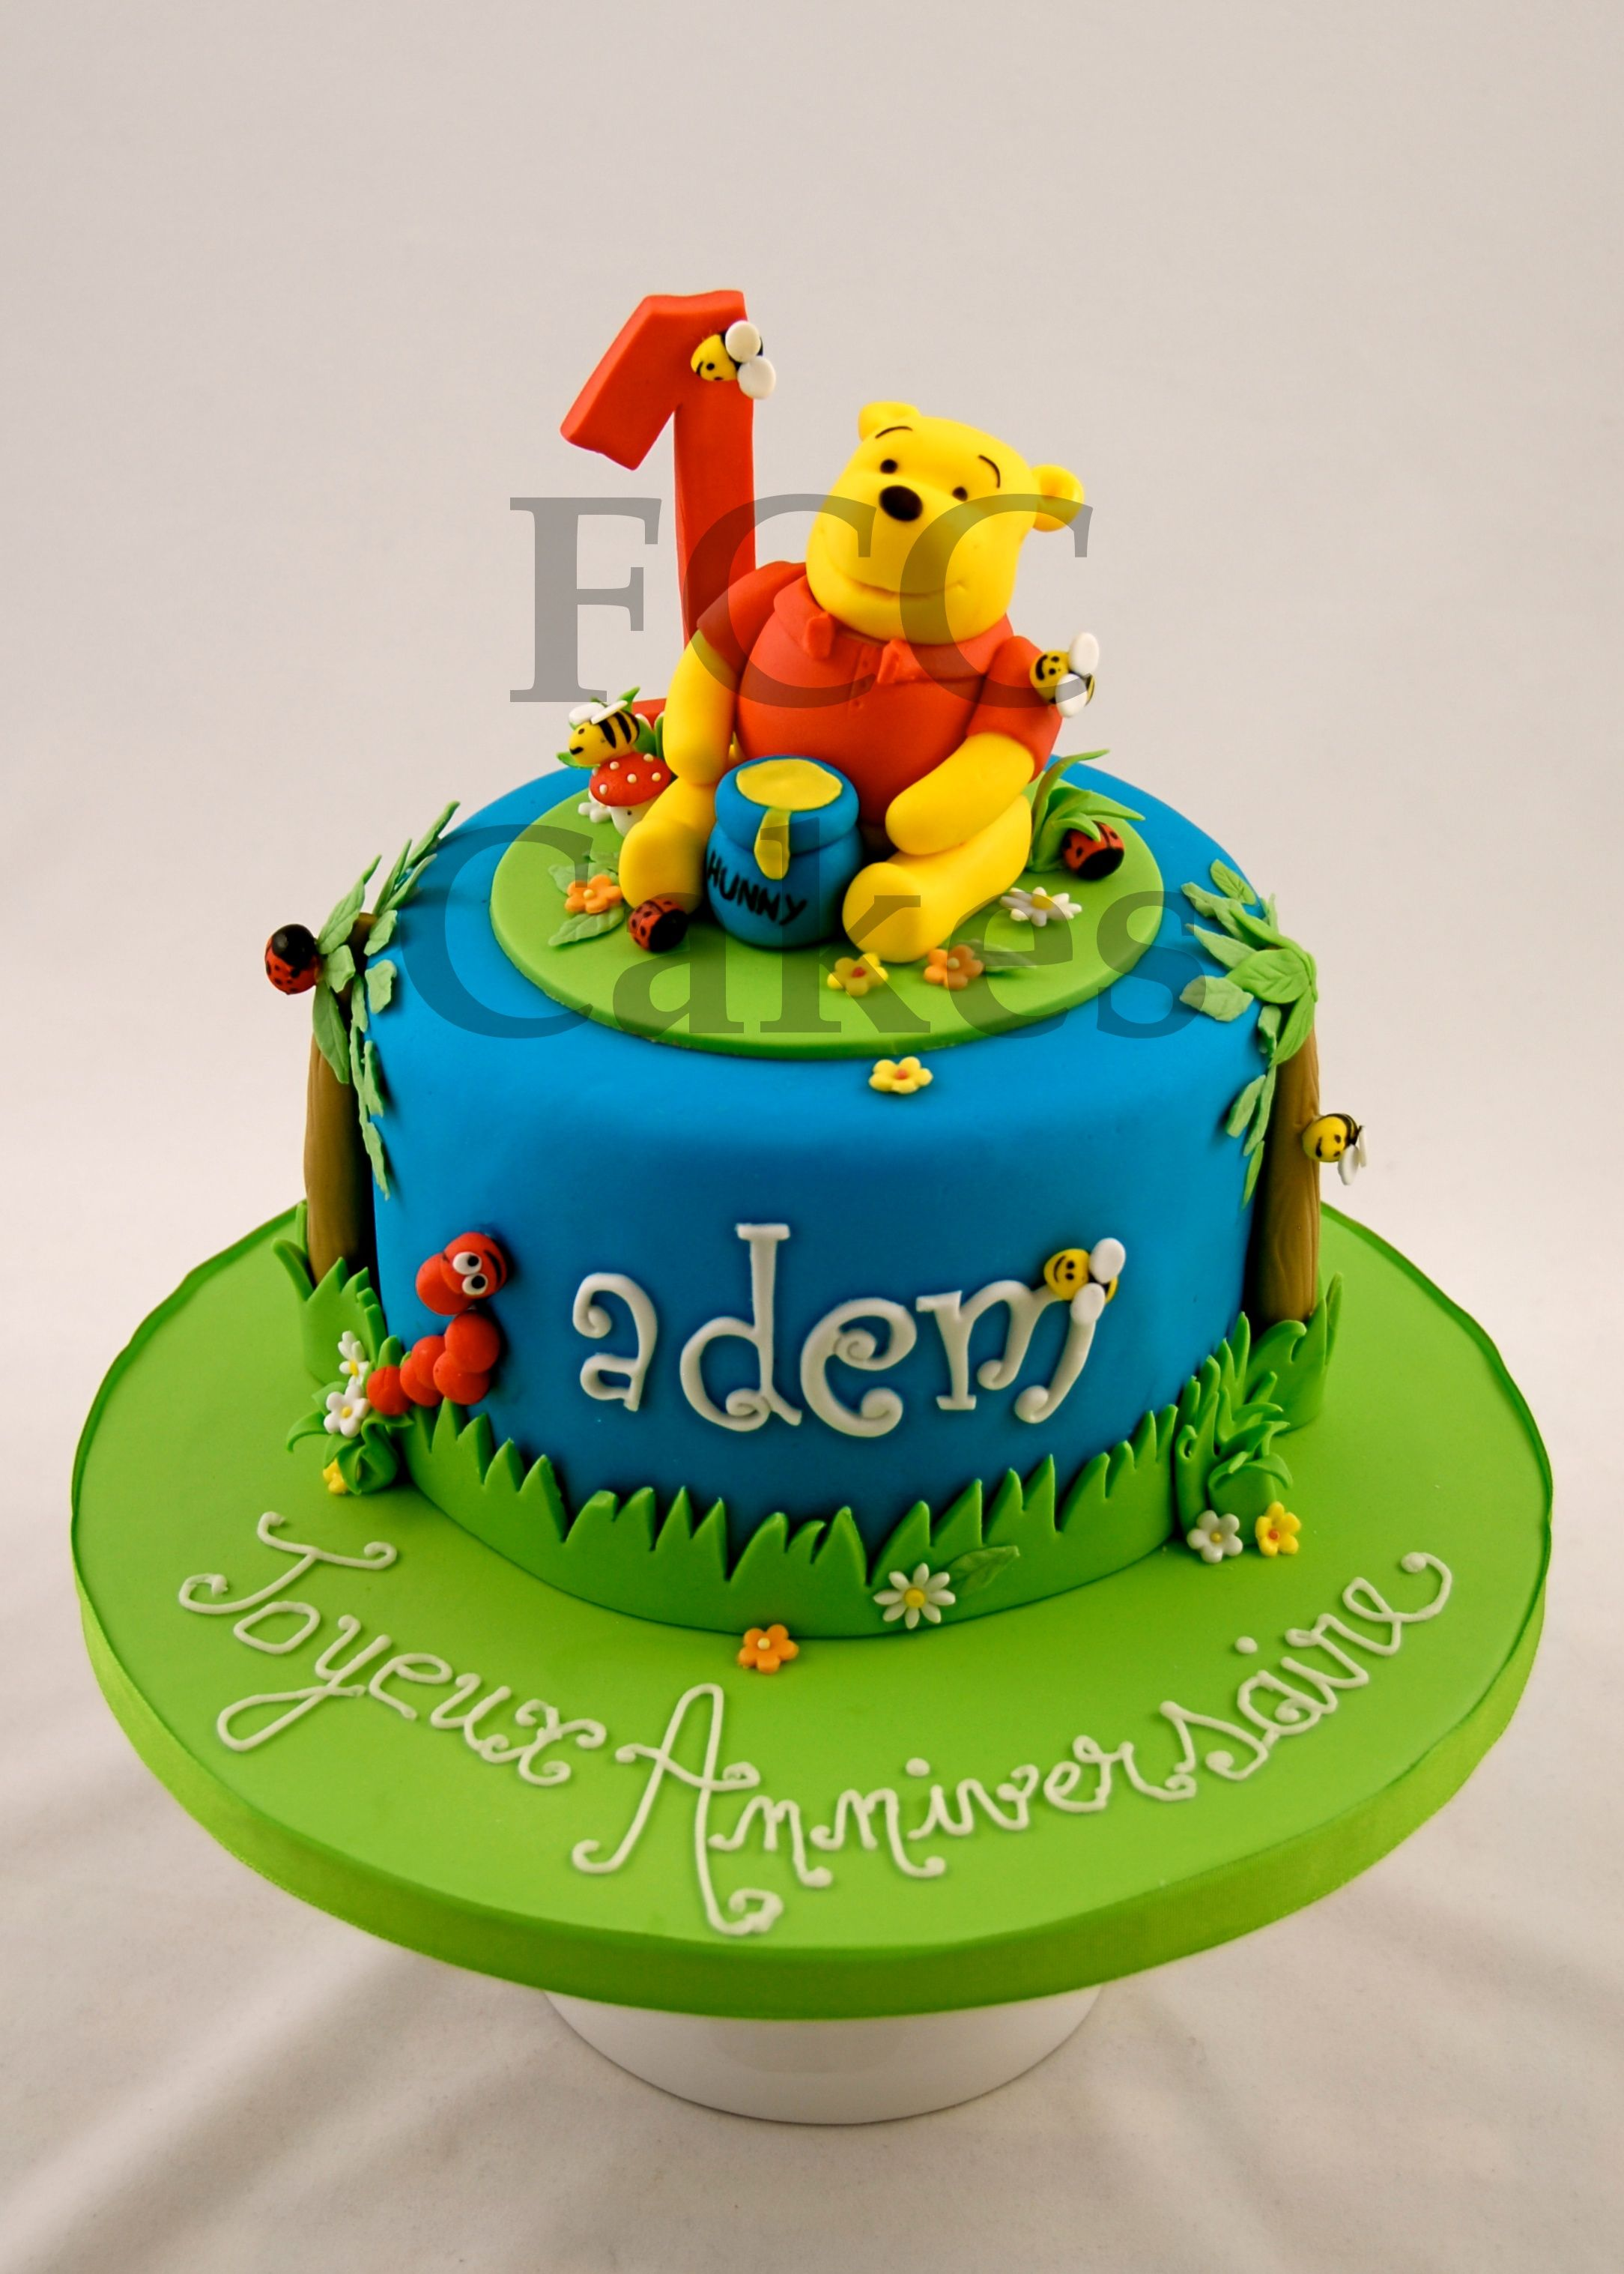 Childrens Birthday Cake Gateau D Anniversaire Pour Enfants Winnie